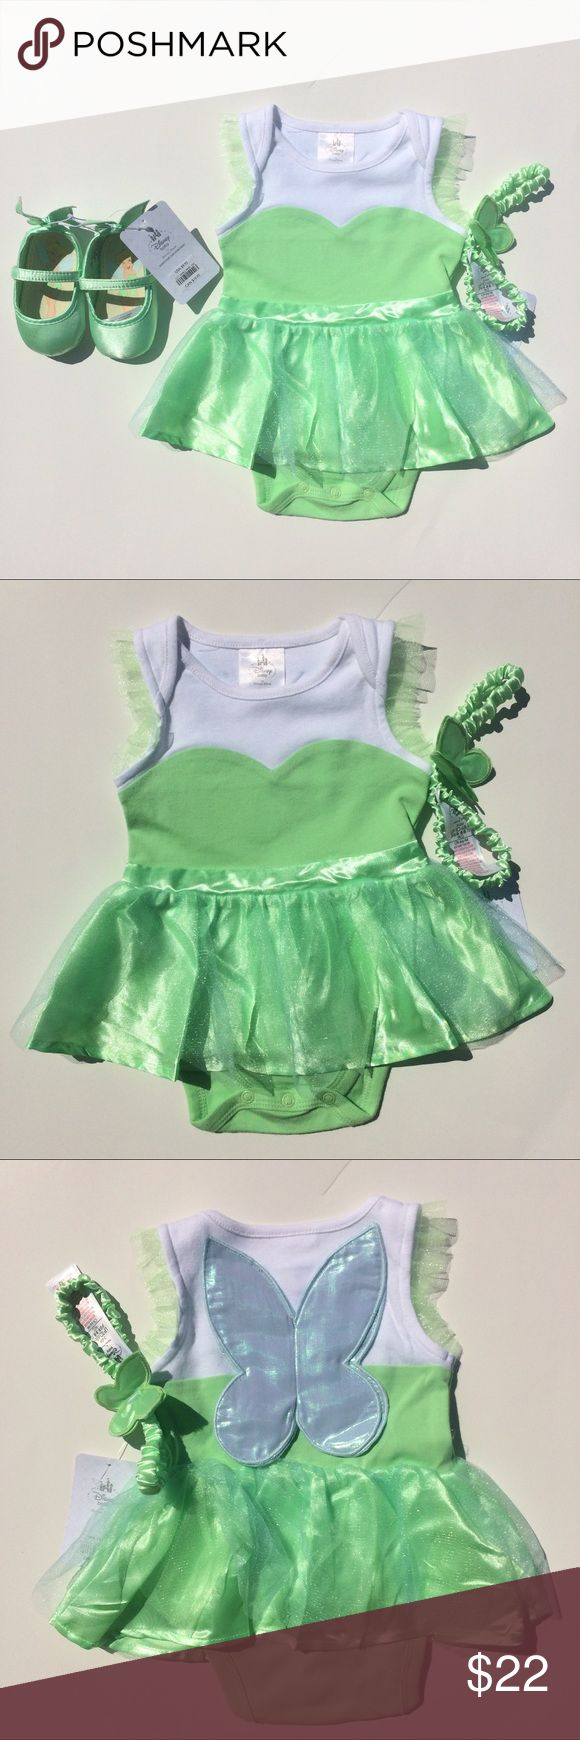 Disney Tinkerbell Outfit For Baby Girl 6-9 months This Cute Tinkerbell outfit is perfect for your little girl! The set includes little Tinkerbell shoes, a headband, and a cute little one piece outfit! Disney One Pieces Bodysuits